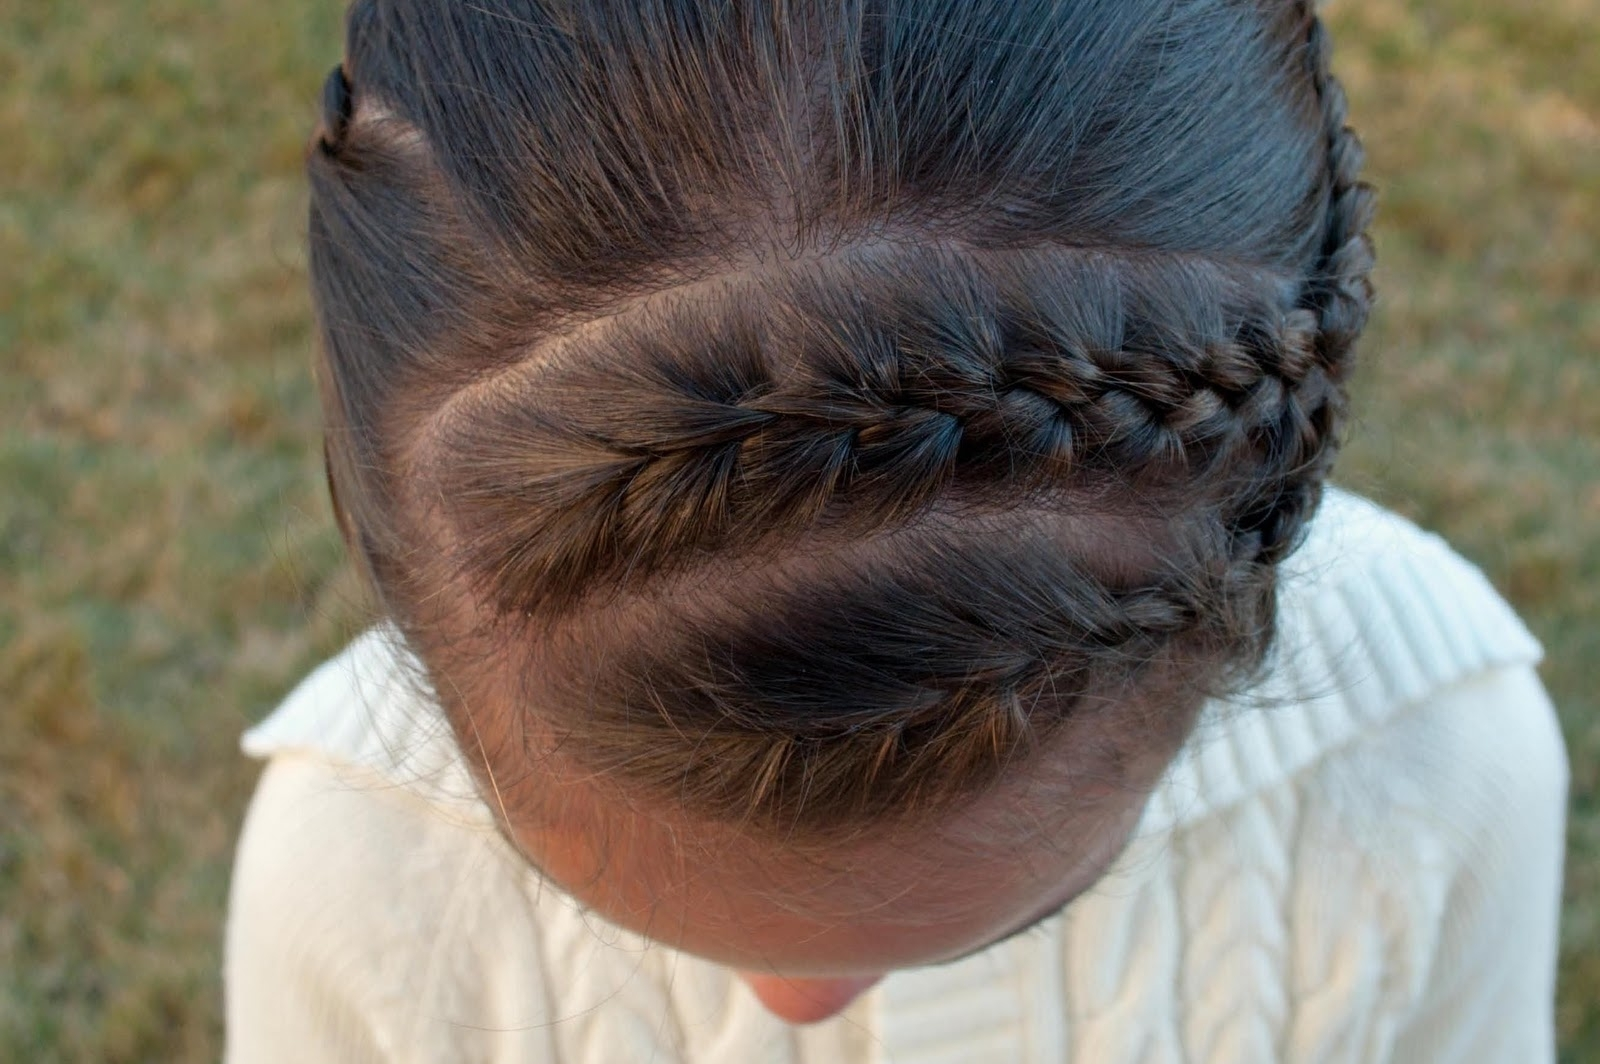 Most Recently Released Diagonal Two French Braid Hairstyles In Maiden Braid ~ New Hairstyles Today (View 11 of 15)